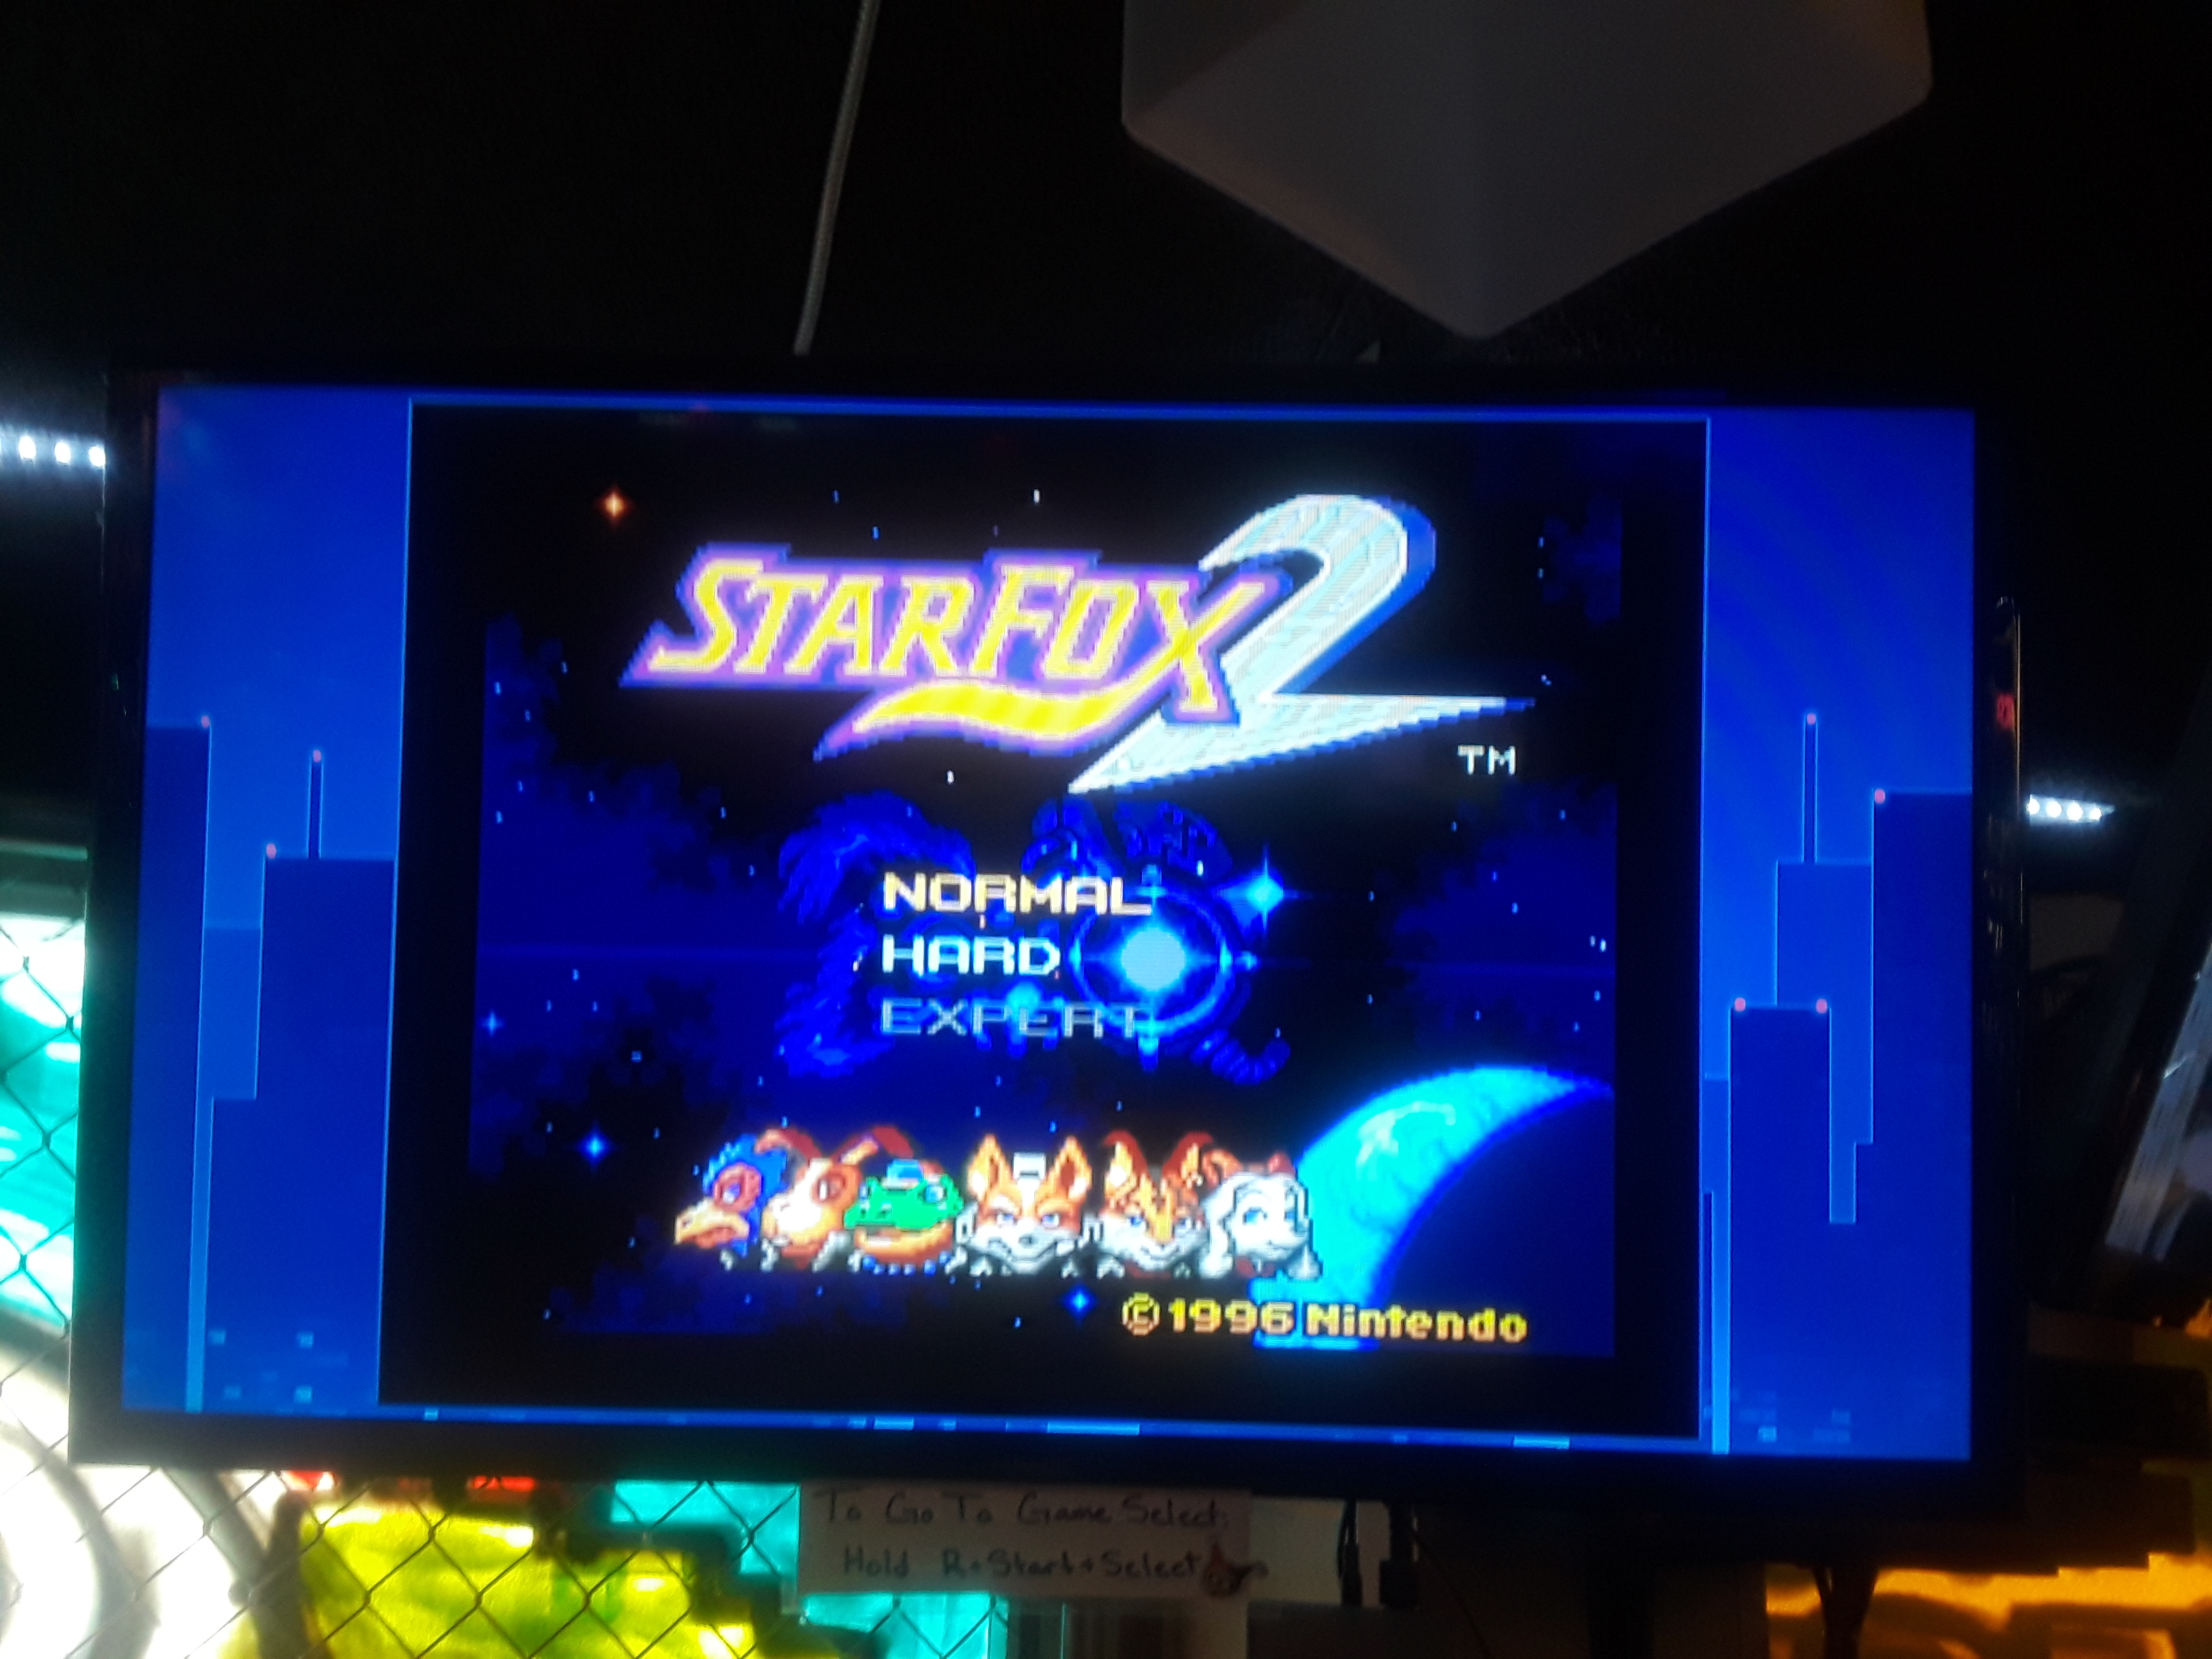 Star Fox 2 [2017] 400 points